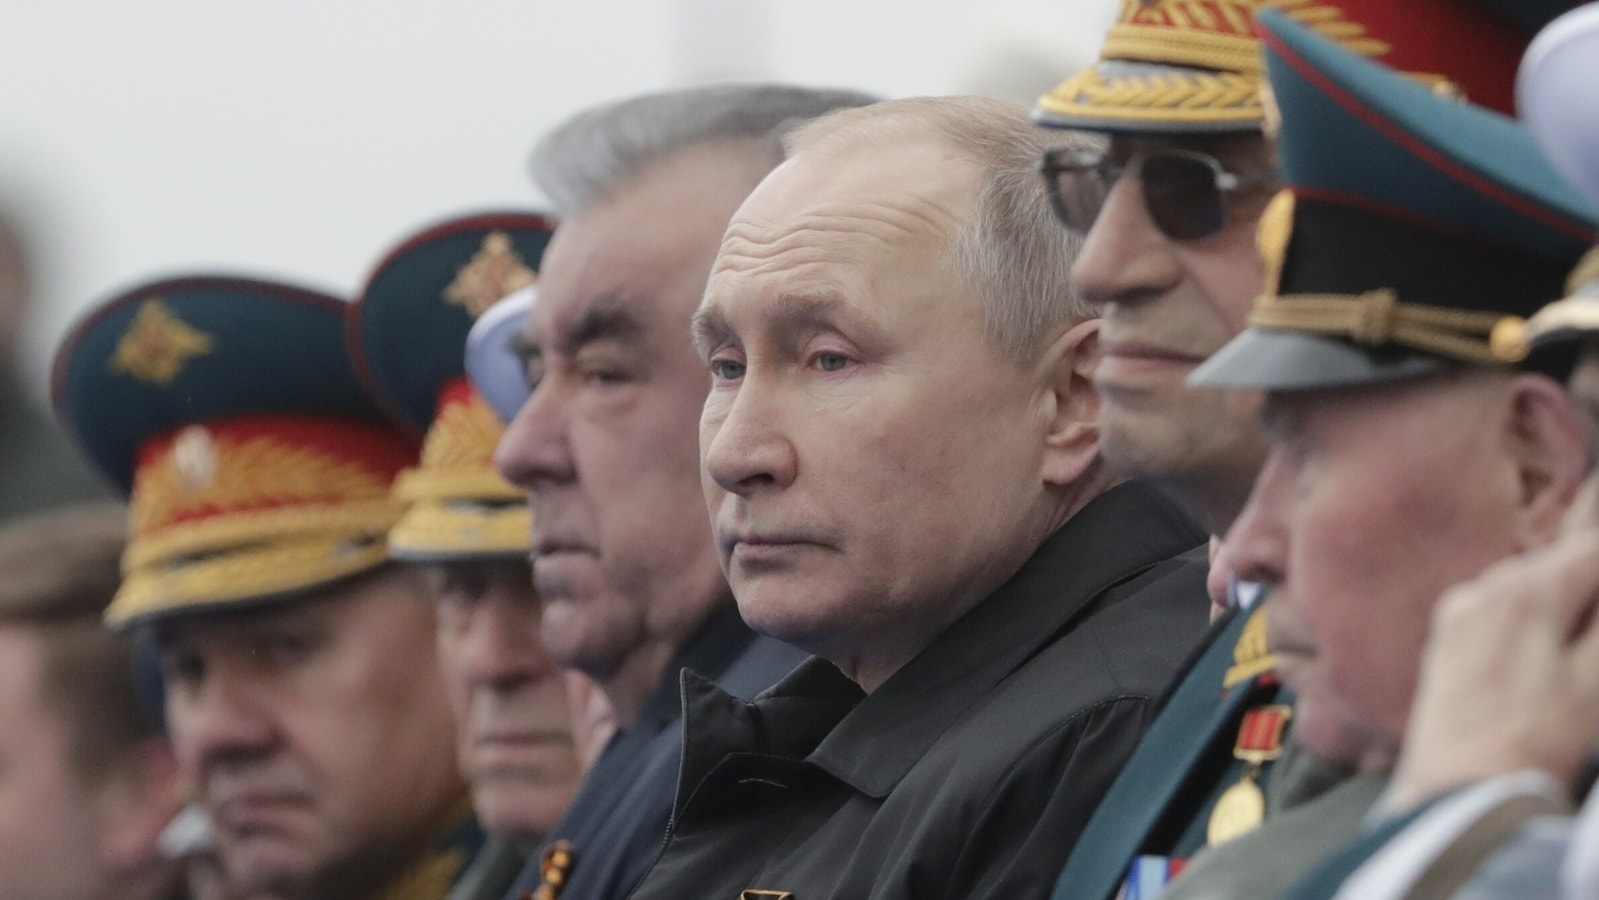 Putin on WWII Victory Day says will 'firmly' defend Russian interests